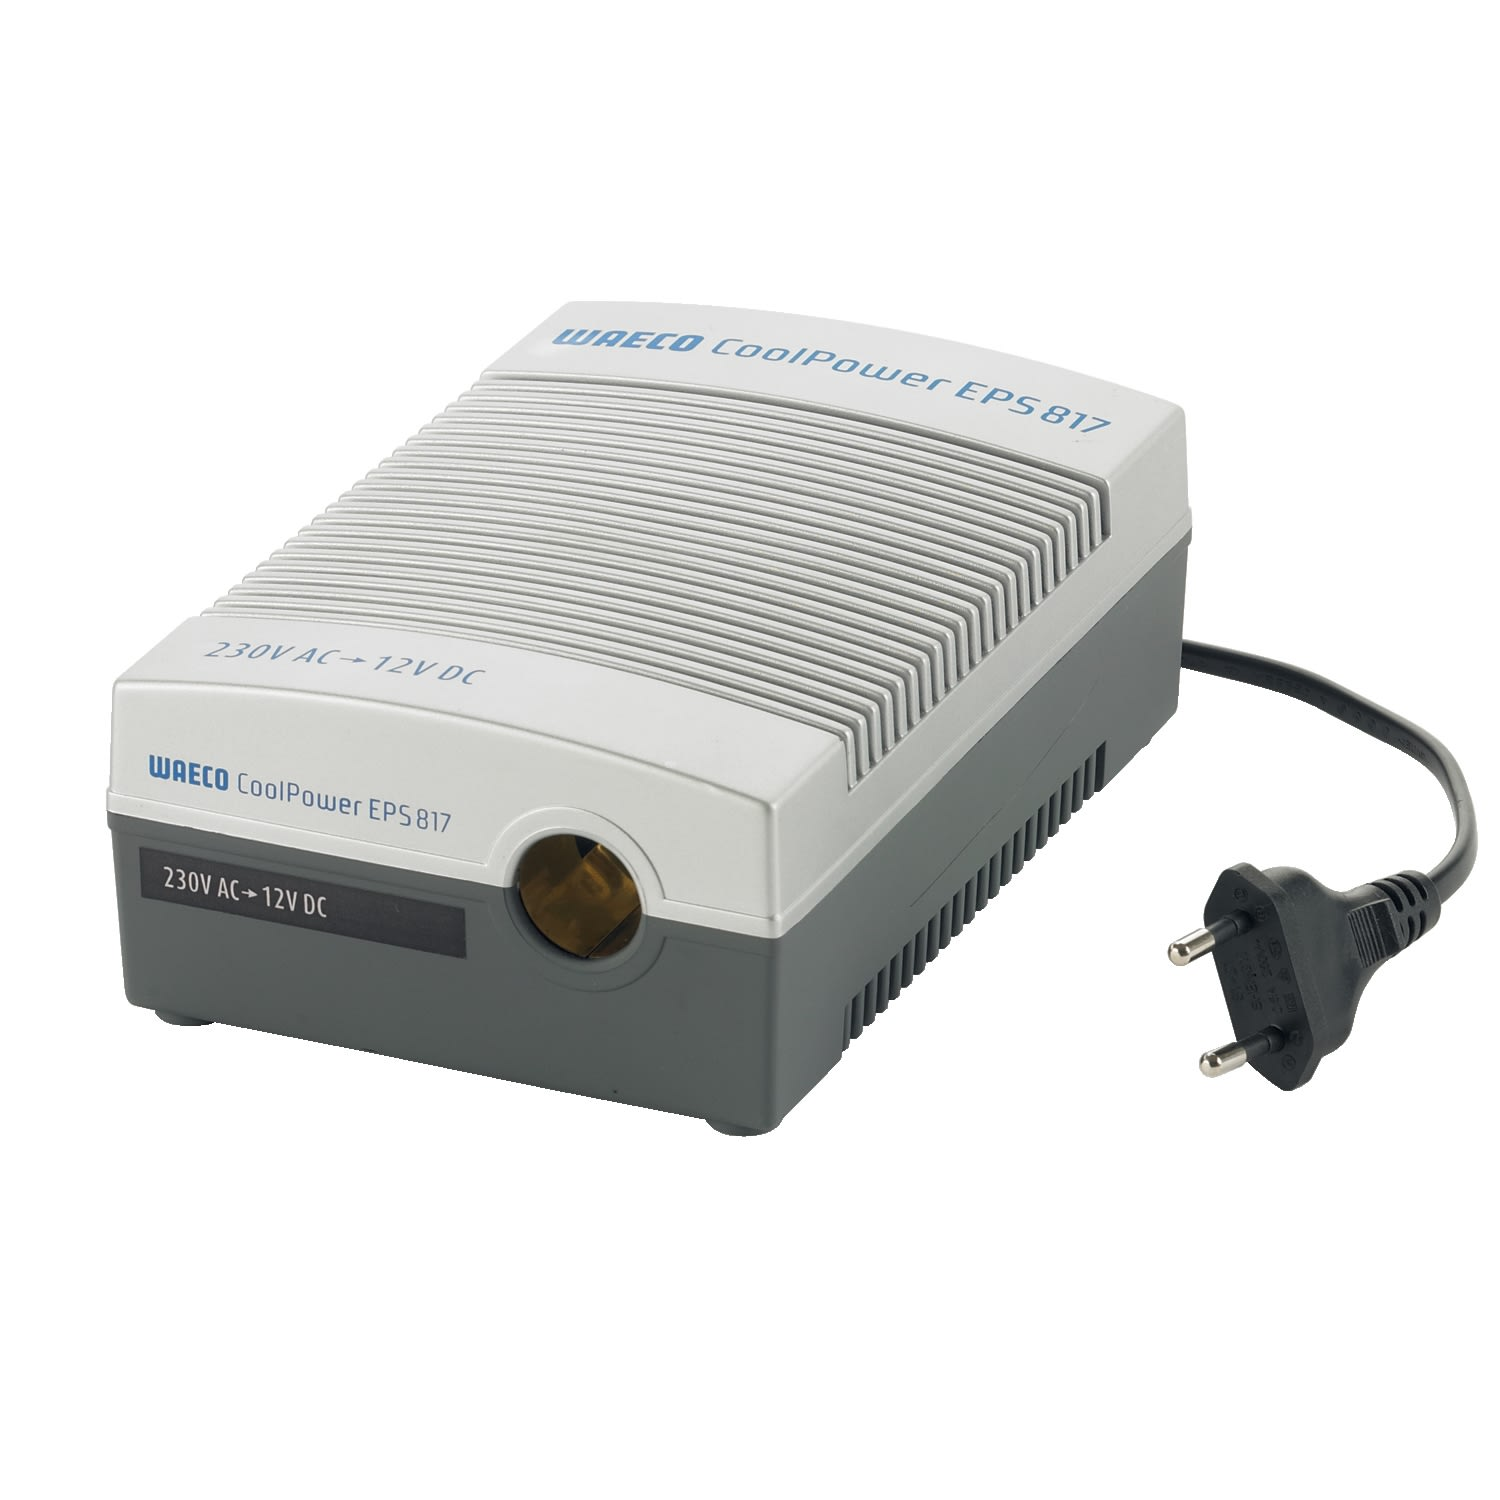 WAECO Mainsadapter for Thermoelectric Coolers